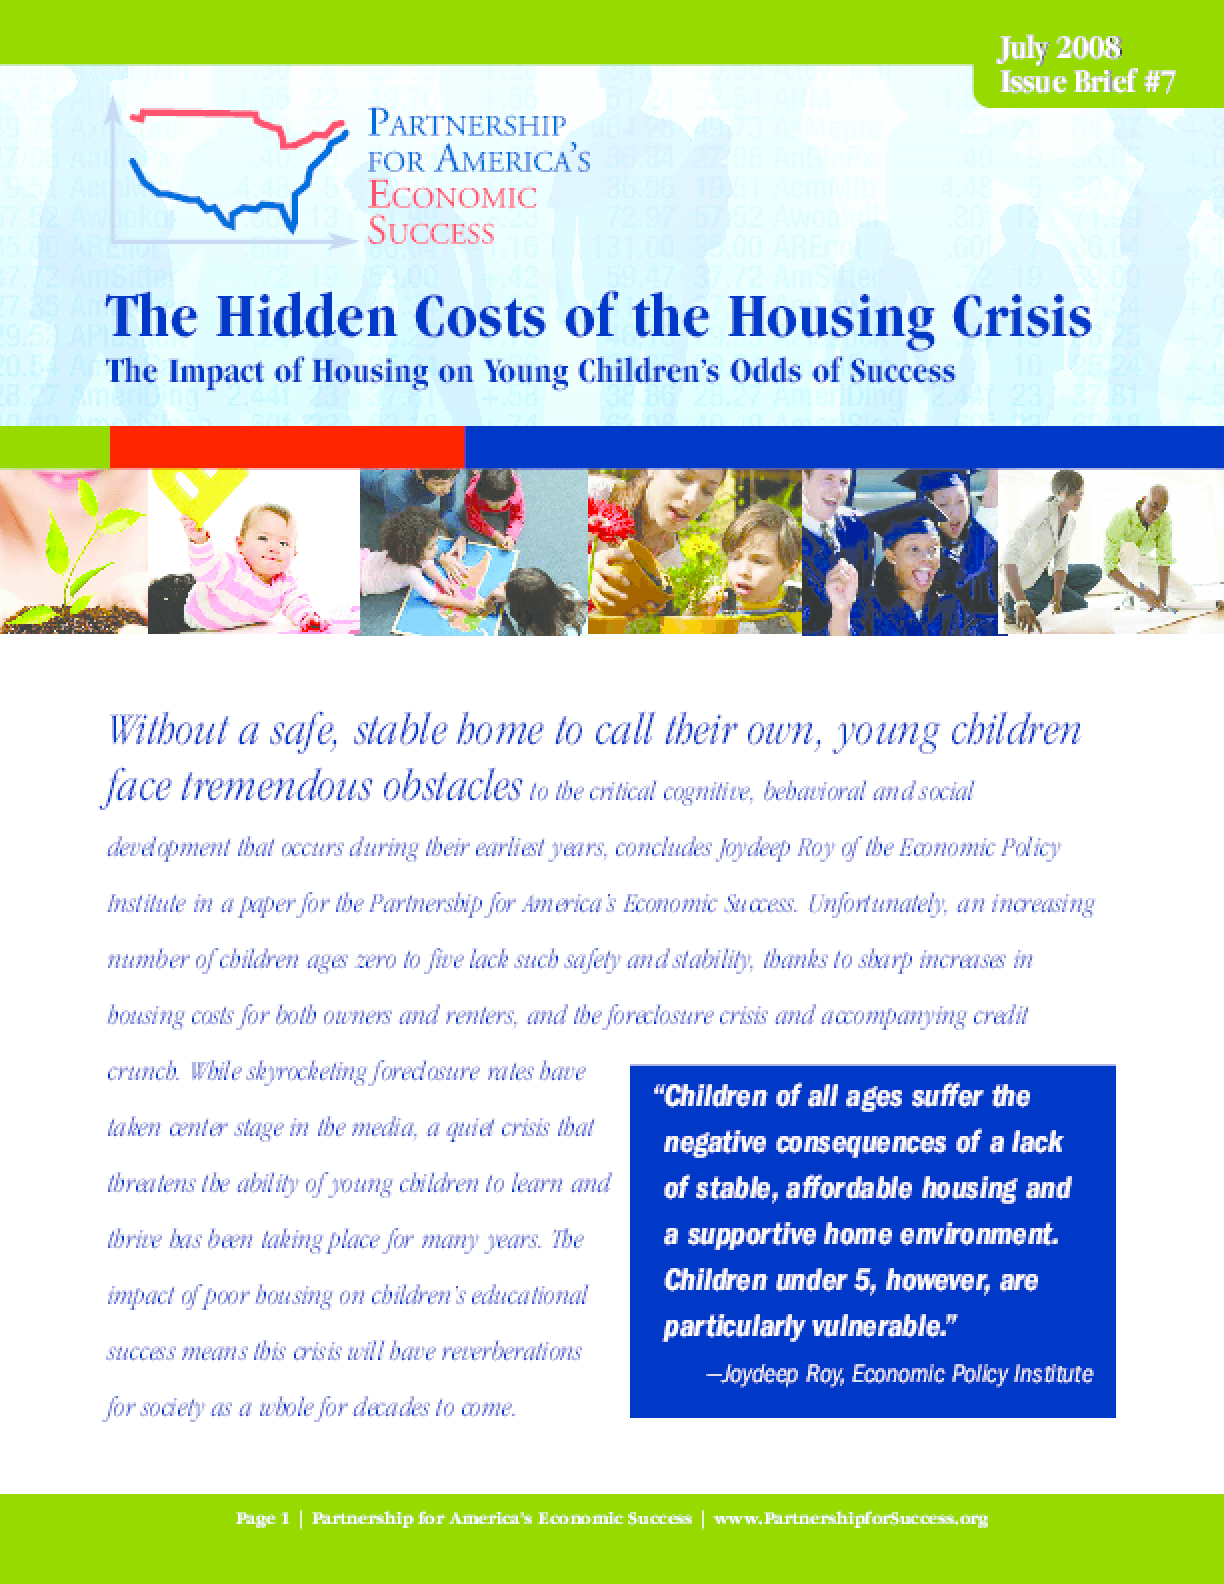 The Hidden Costs of the Housing Crisis: The Impact of Housing on Young Children's Odds of Success